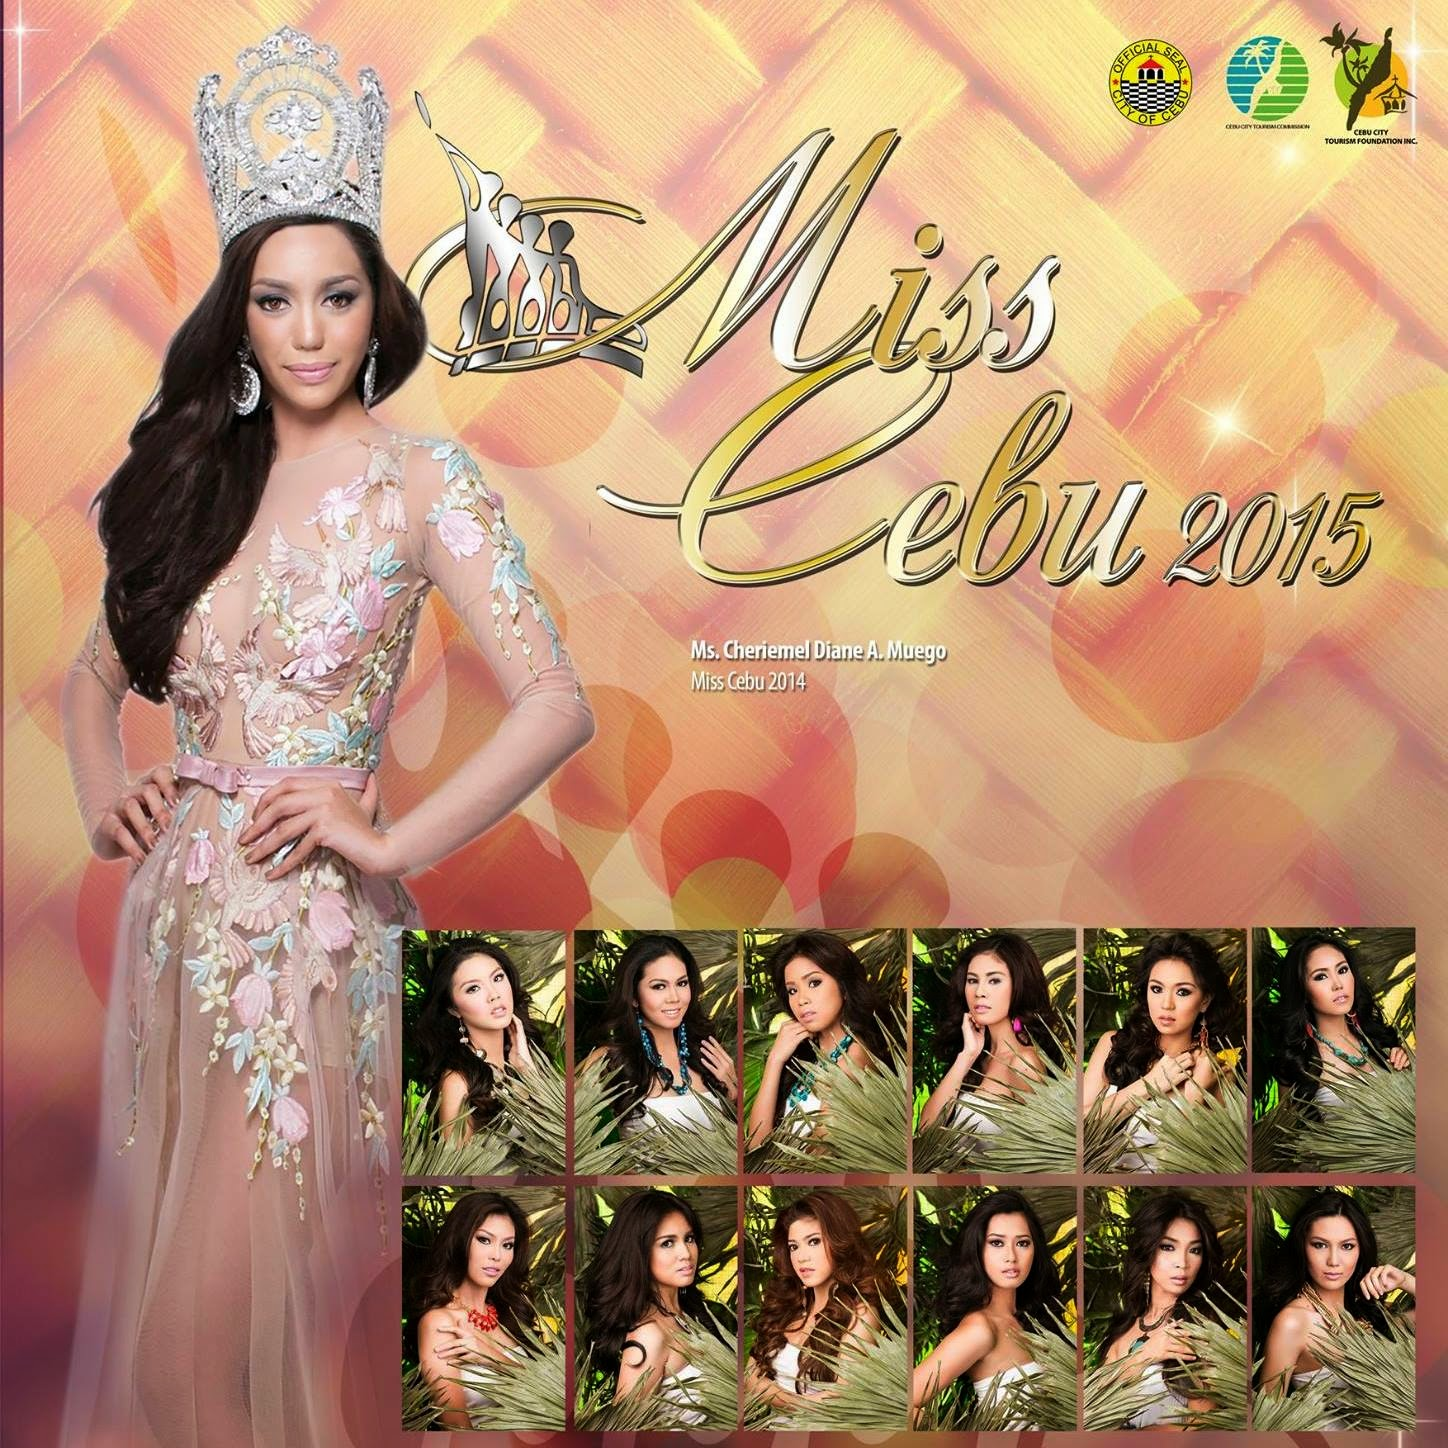 REVVING UP CEBU: Miss Cebu 2015 Coronation Night